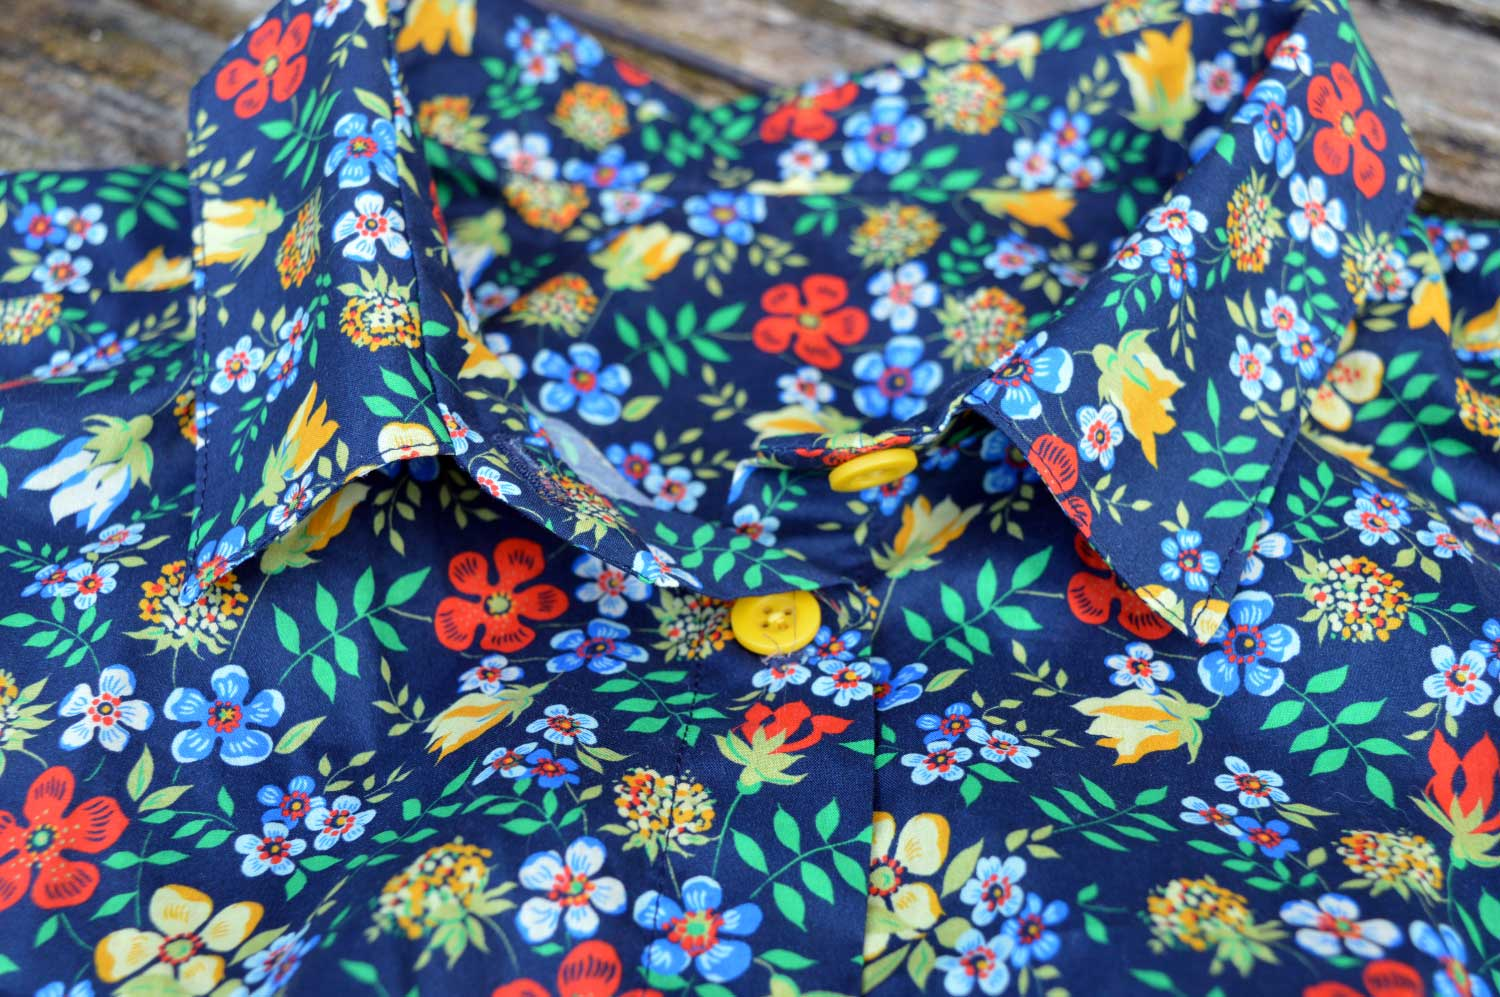 Holm Sown: Grainline Studio Alder Shirt - Liberty Edenham F. Collar detail.